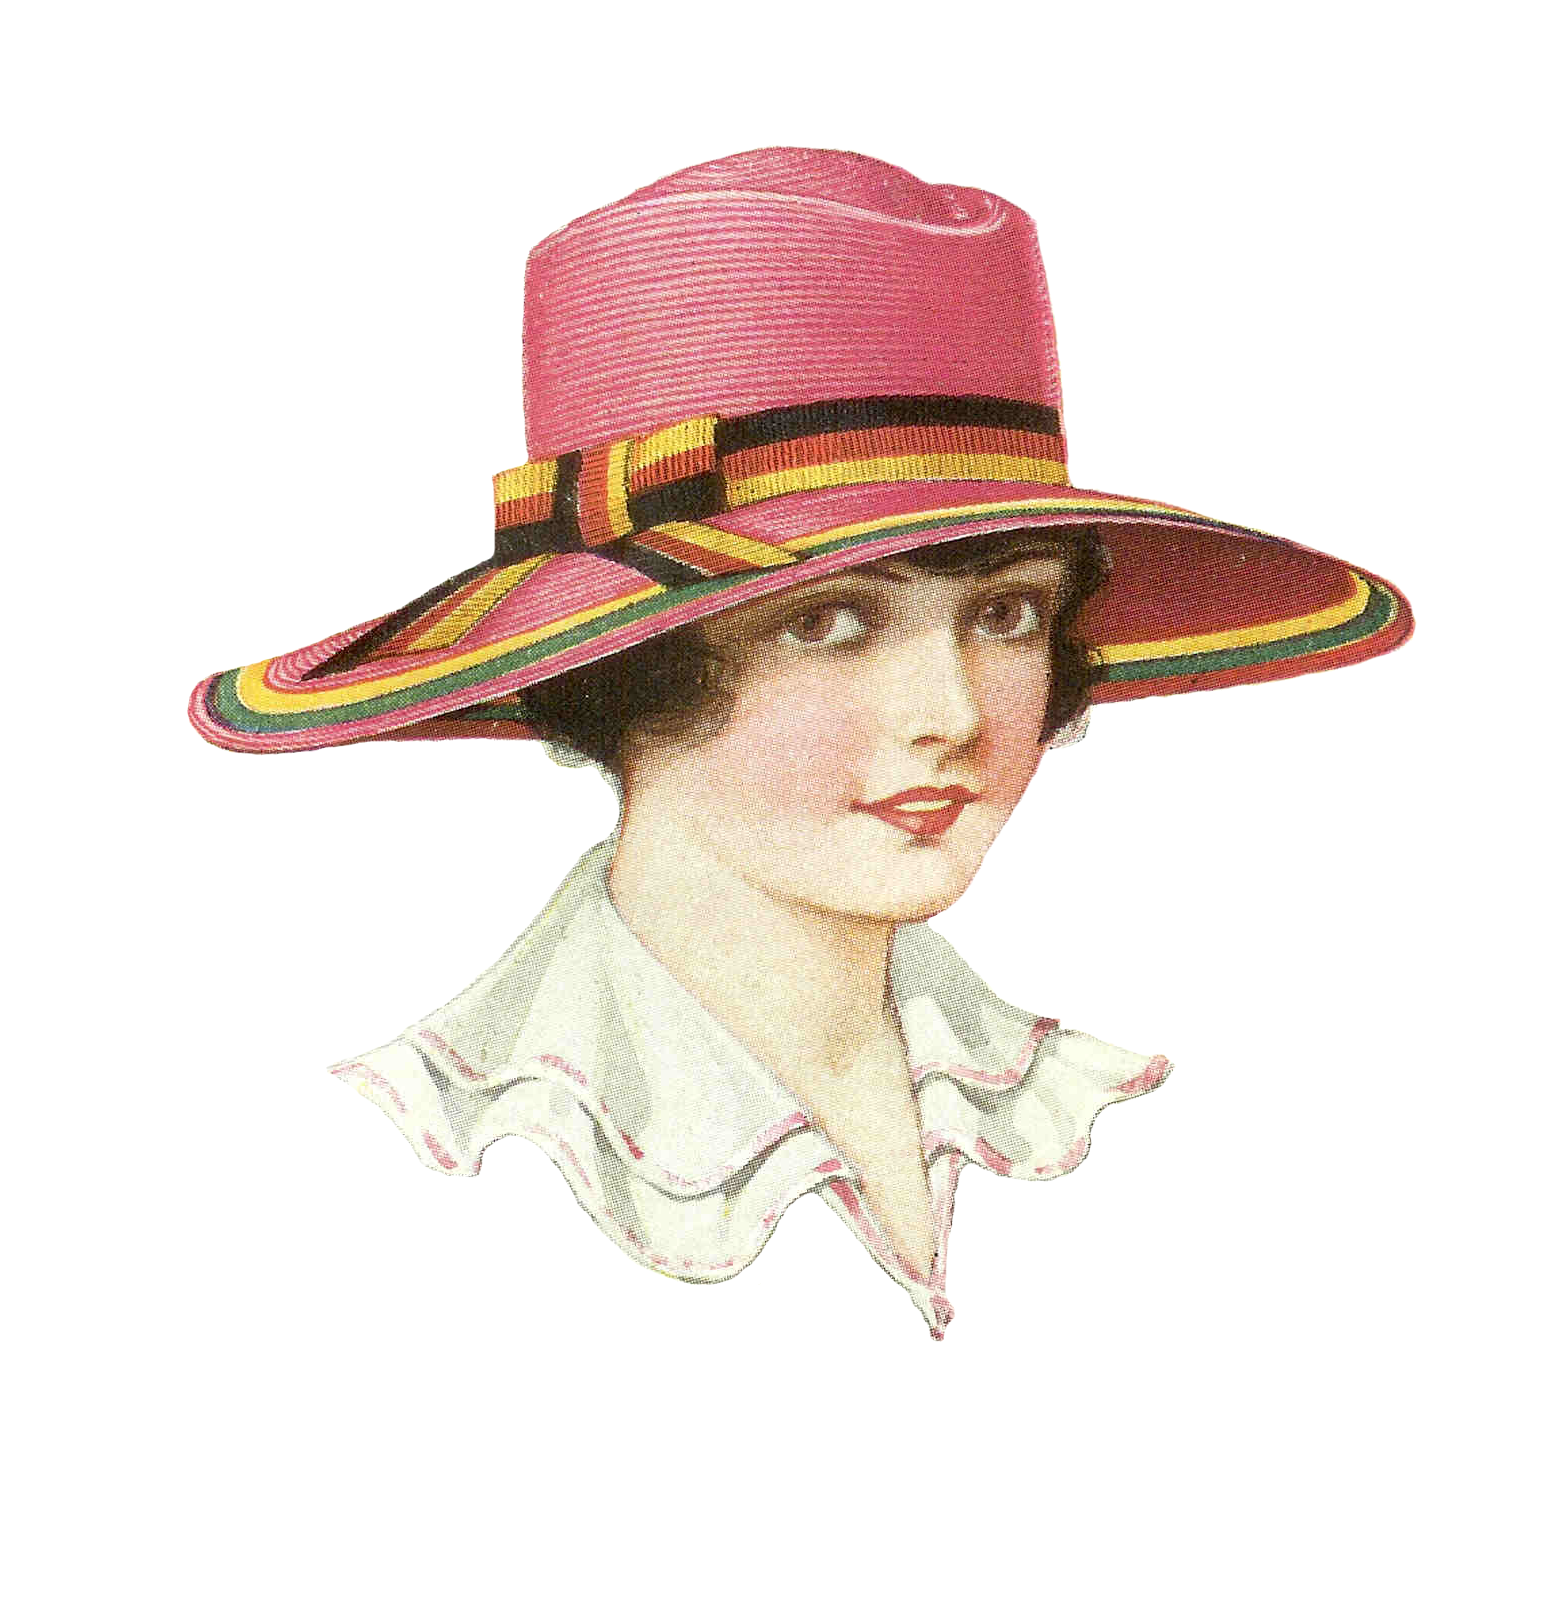 vintage hat clipart - photo #6